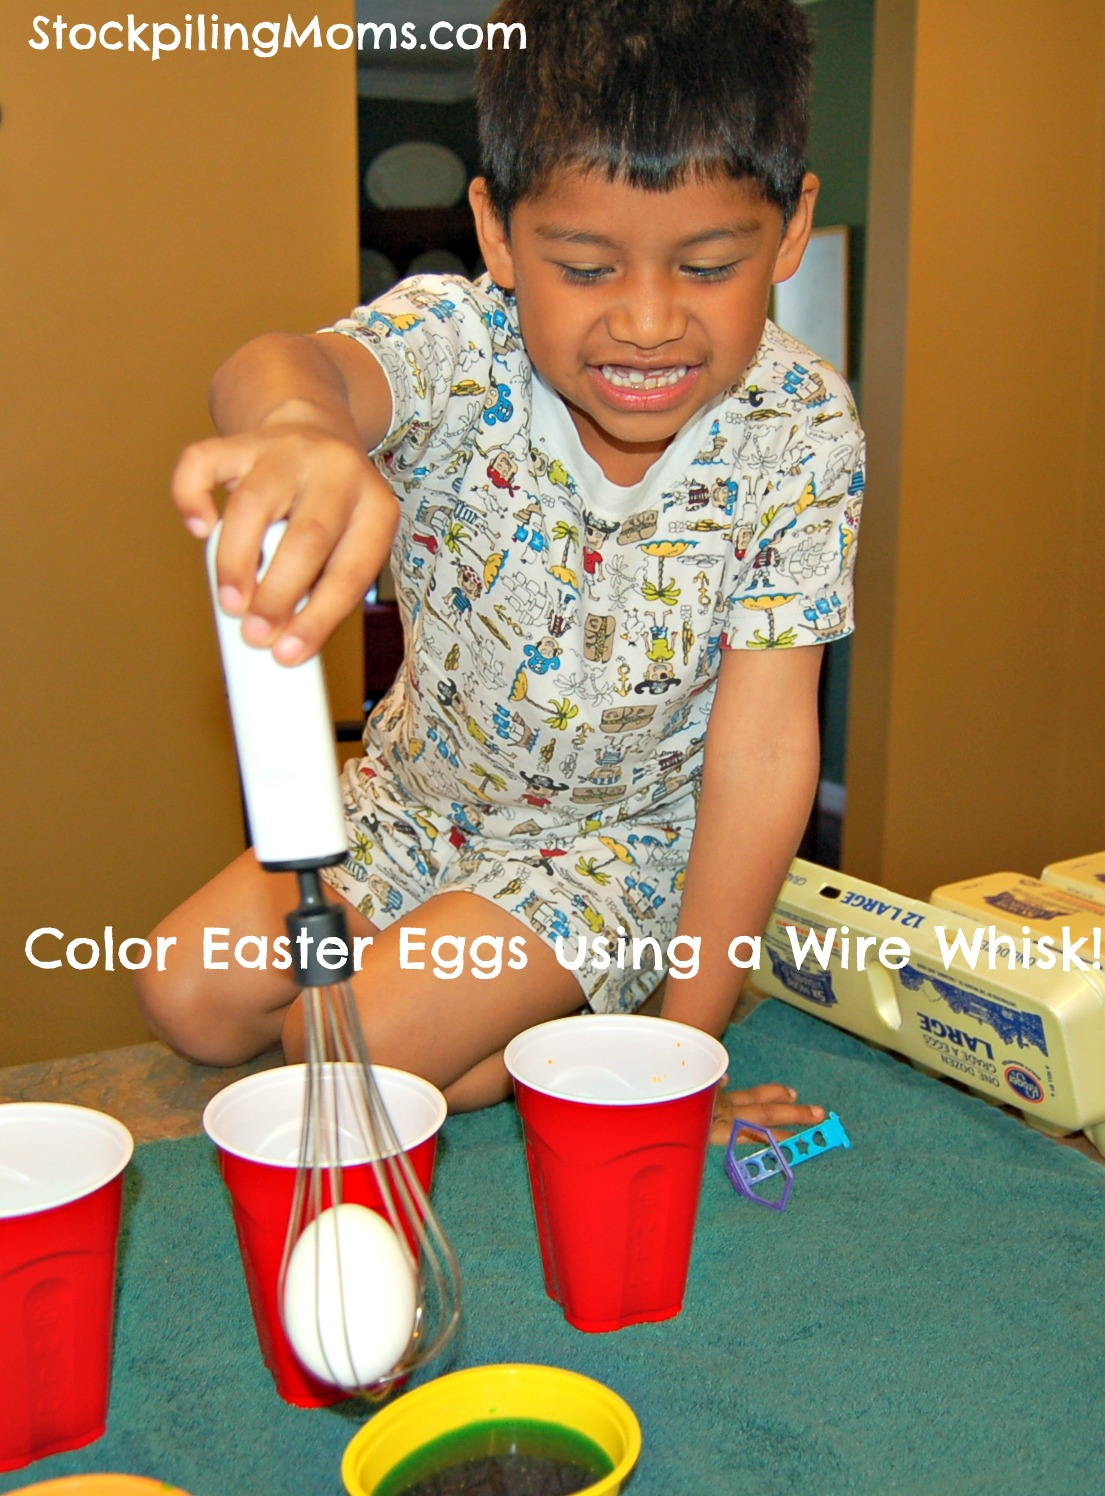 This is a great trick for coloring Easter Eggs! Simply slide the egg into the wire whisk and go!